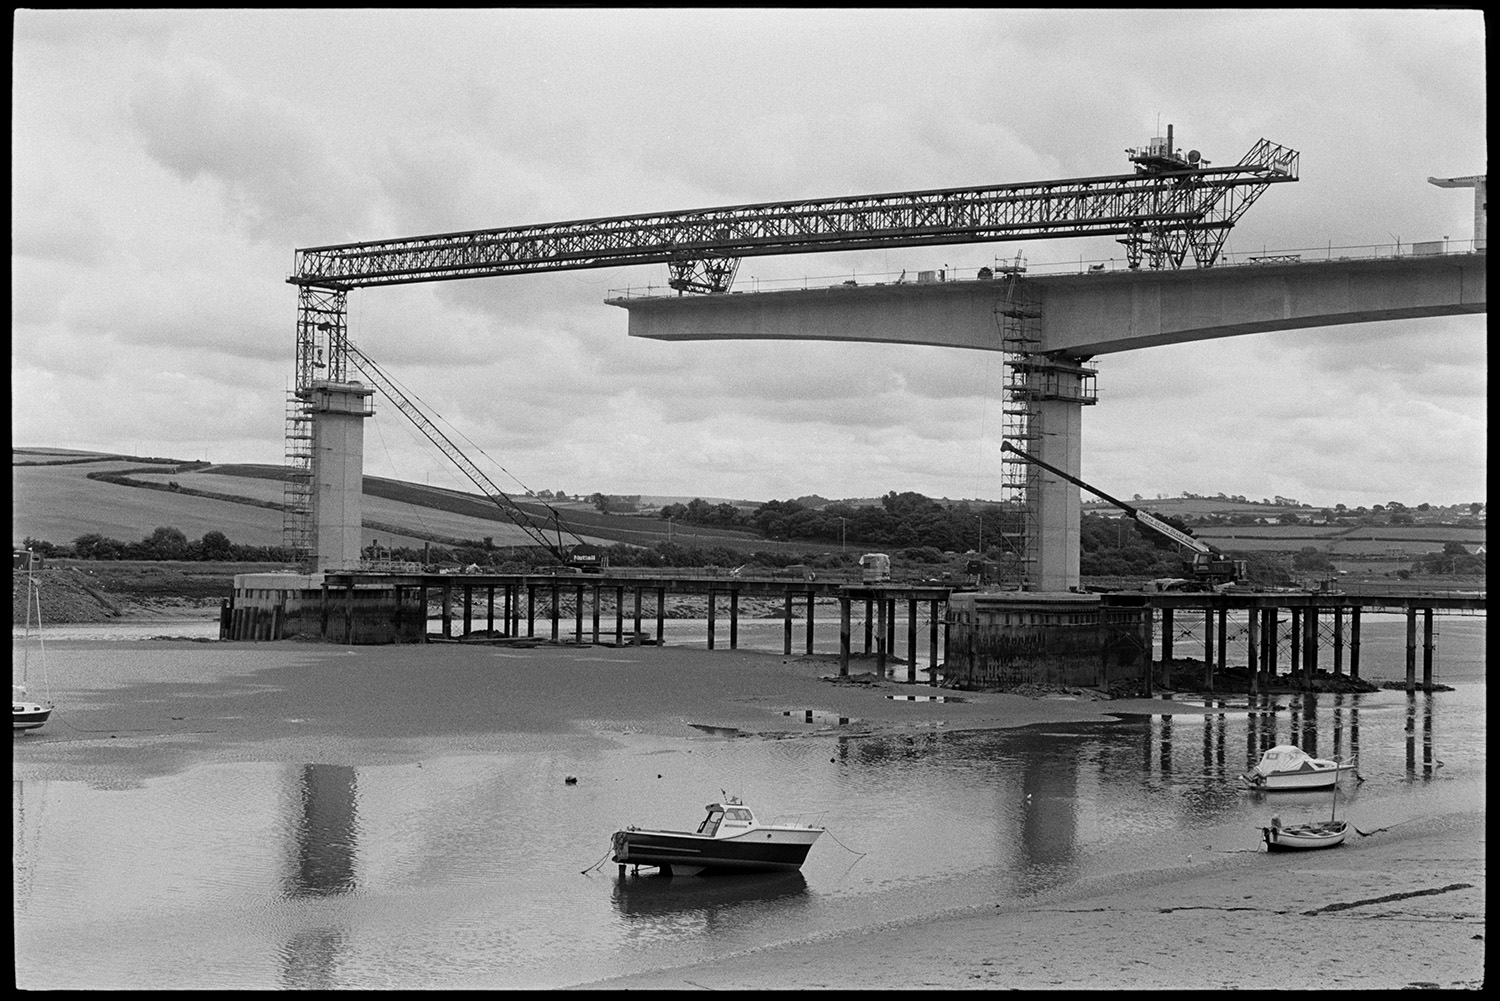 New bridge under construction. Boat and mudflats.<br /> [Bideford New Bridge under construction over the River Torridge. Scaffolding and working cranes are visible and small boats can be seen on the mudflats. A landscape of fields is visible in the background.]